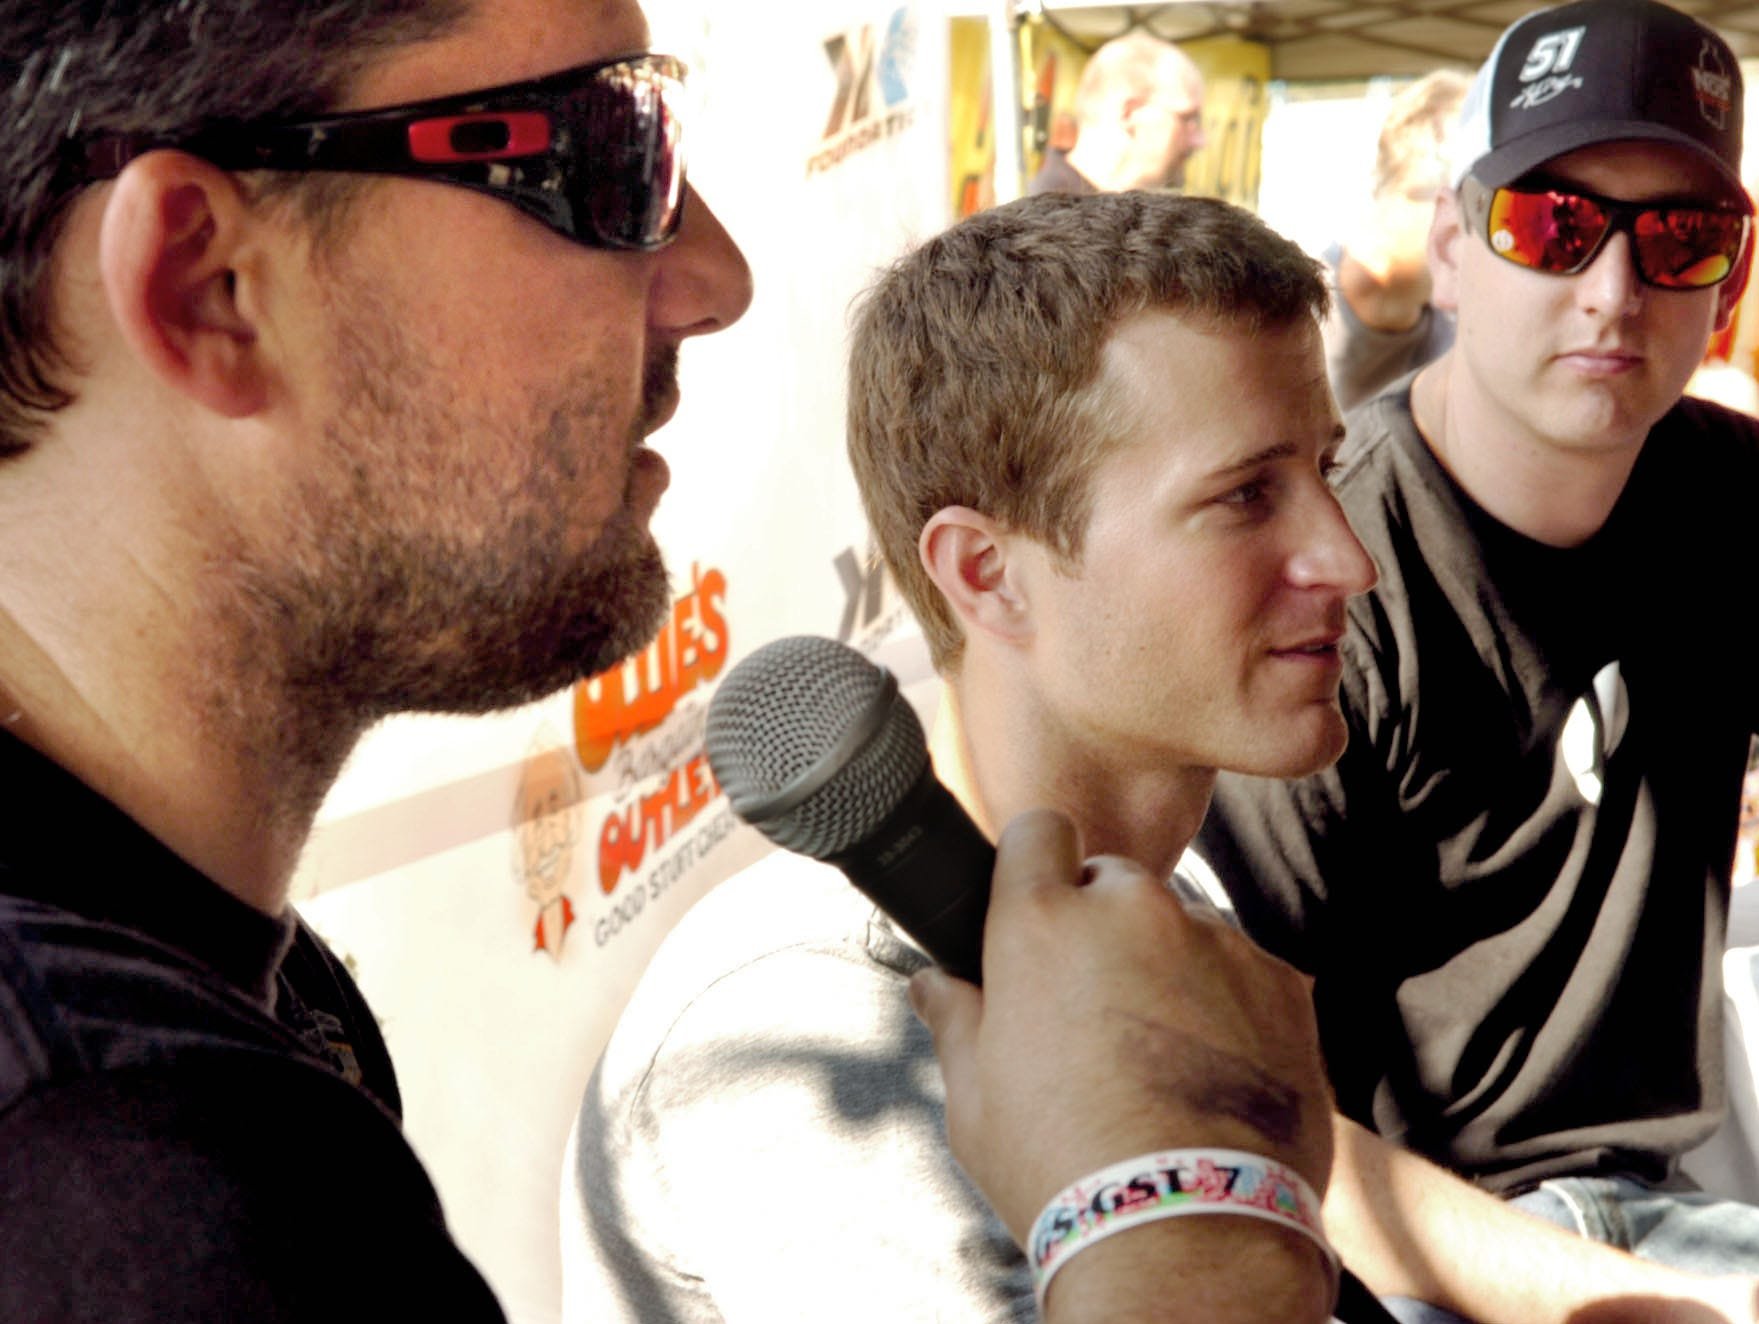 local by bil. Tony Stewart, left, Kasey Kahne and Kyle Busch talk with media prior to Thursday's races at Williams Grove in 2010.